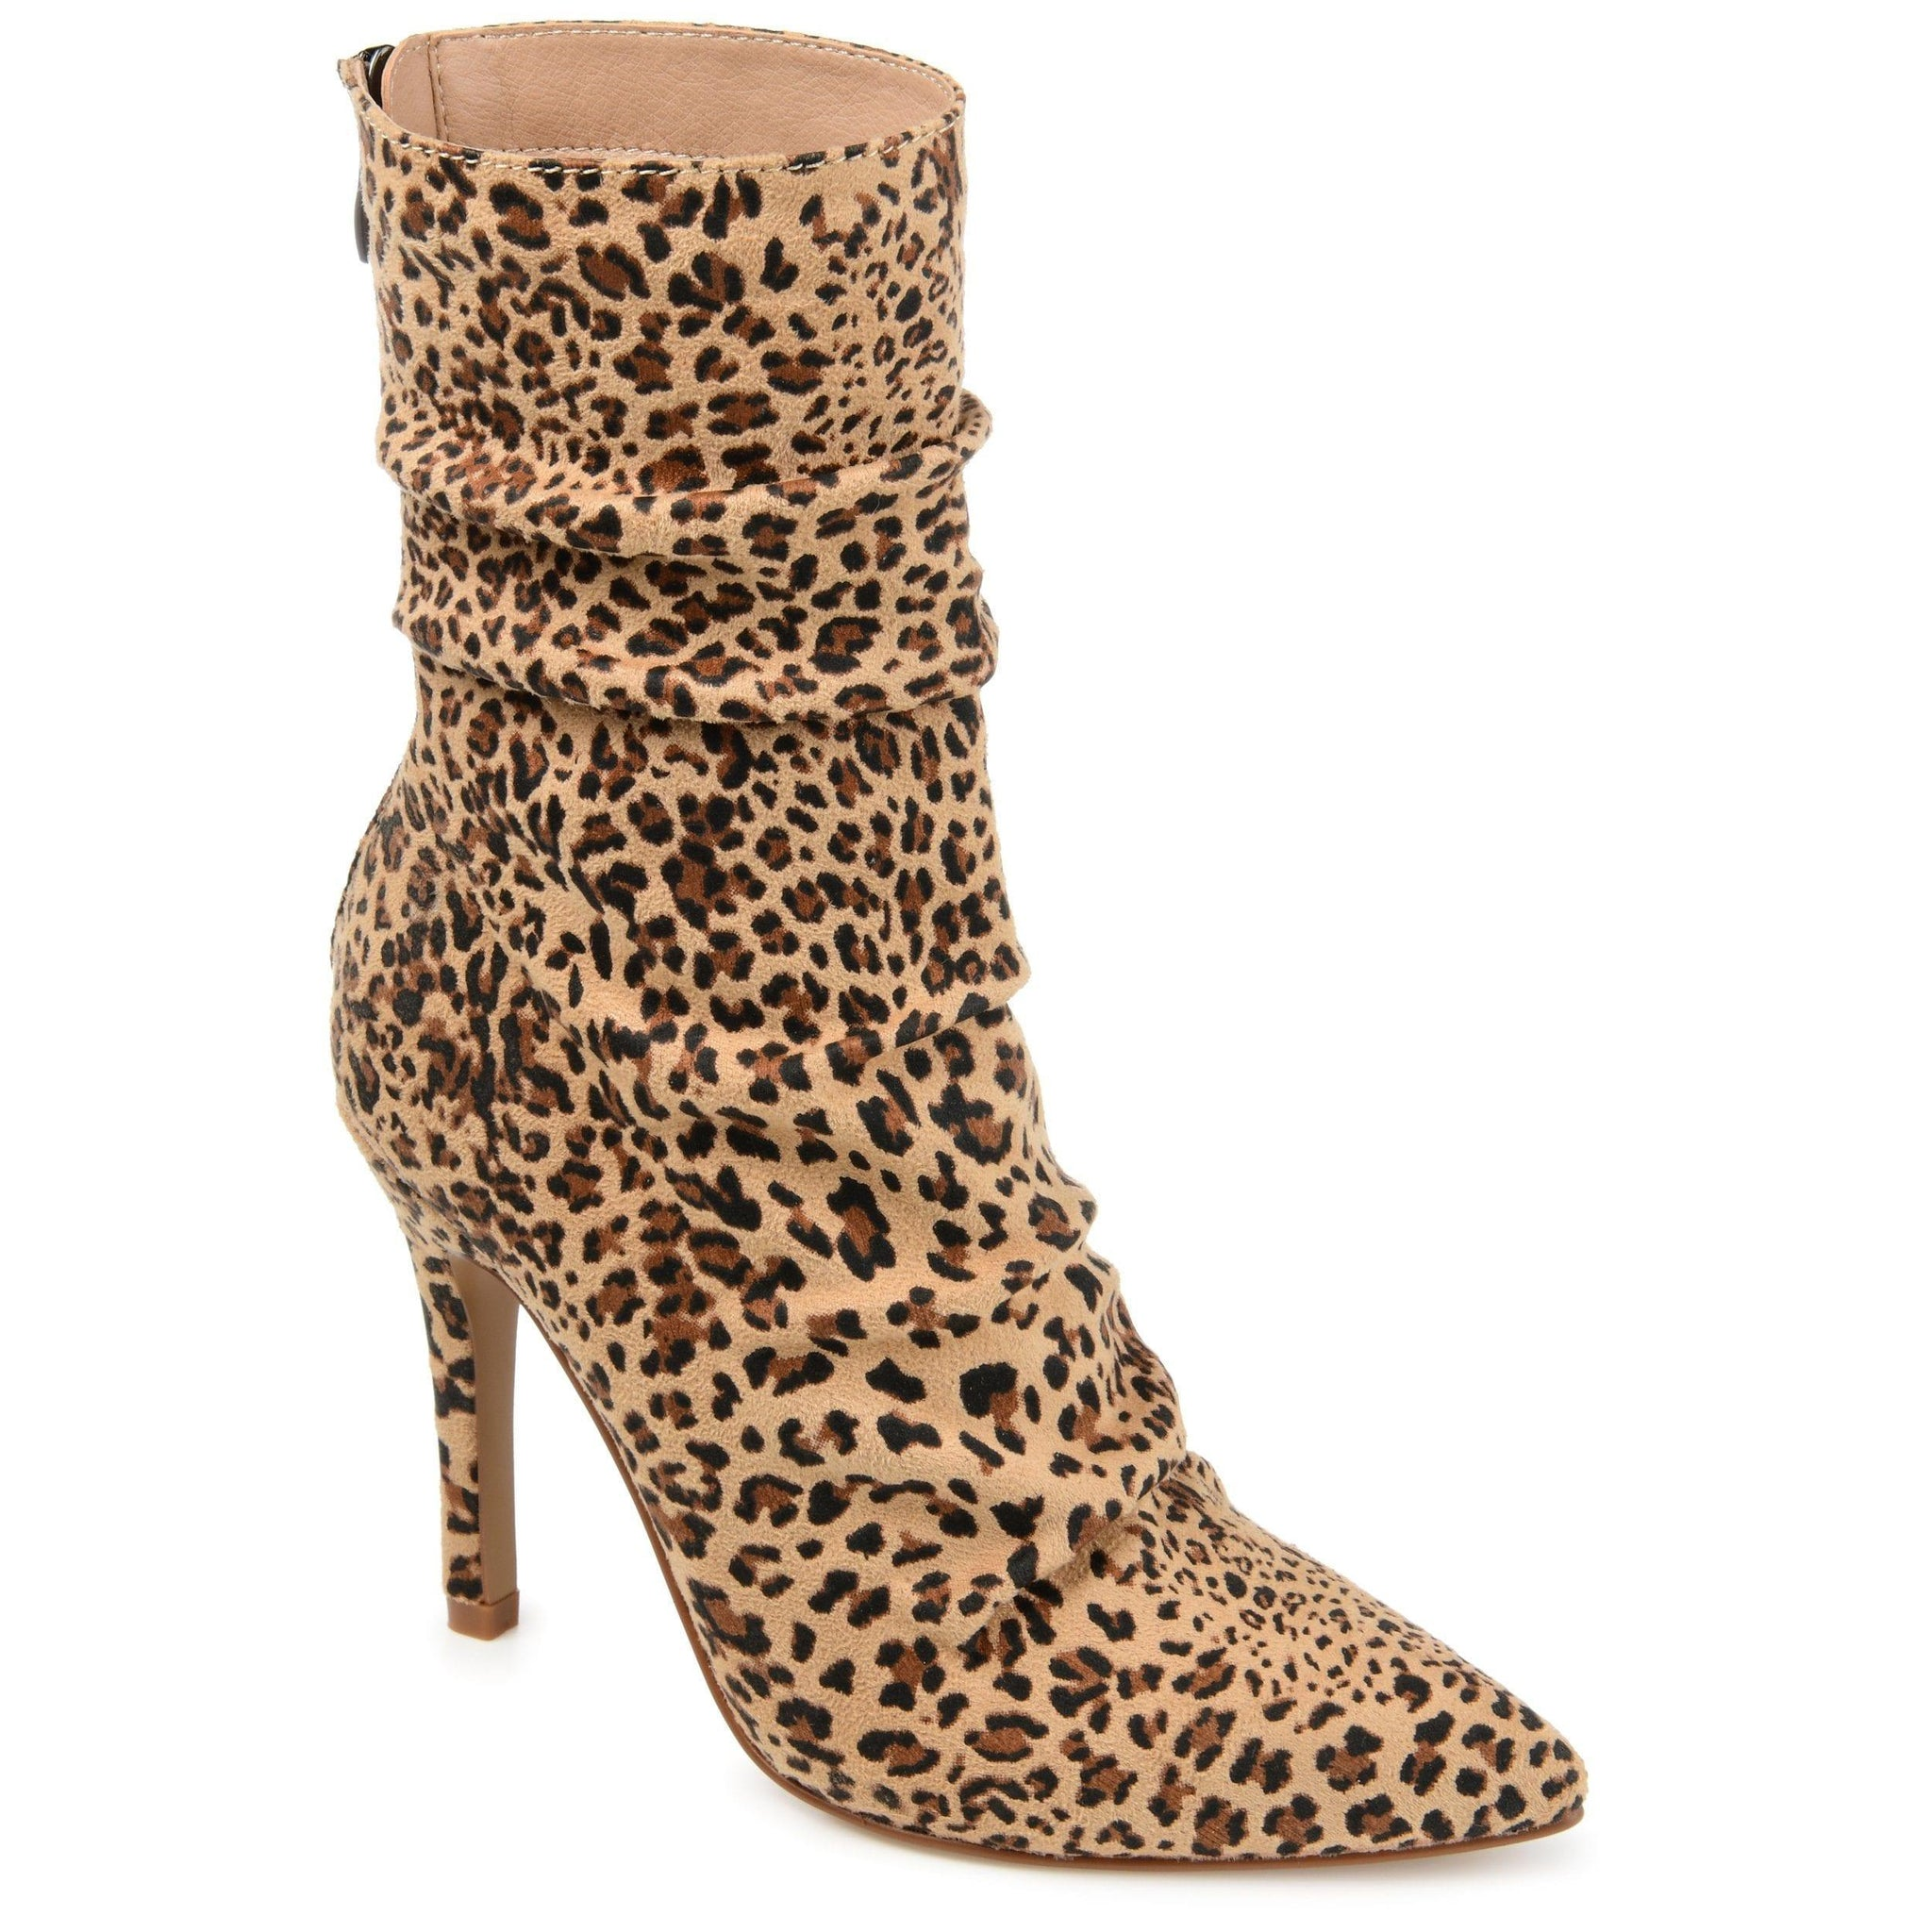 MARKIE SHOES Journee Collection Leopard 8.5